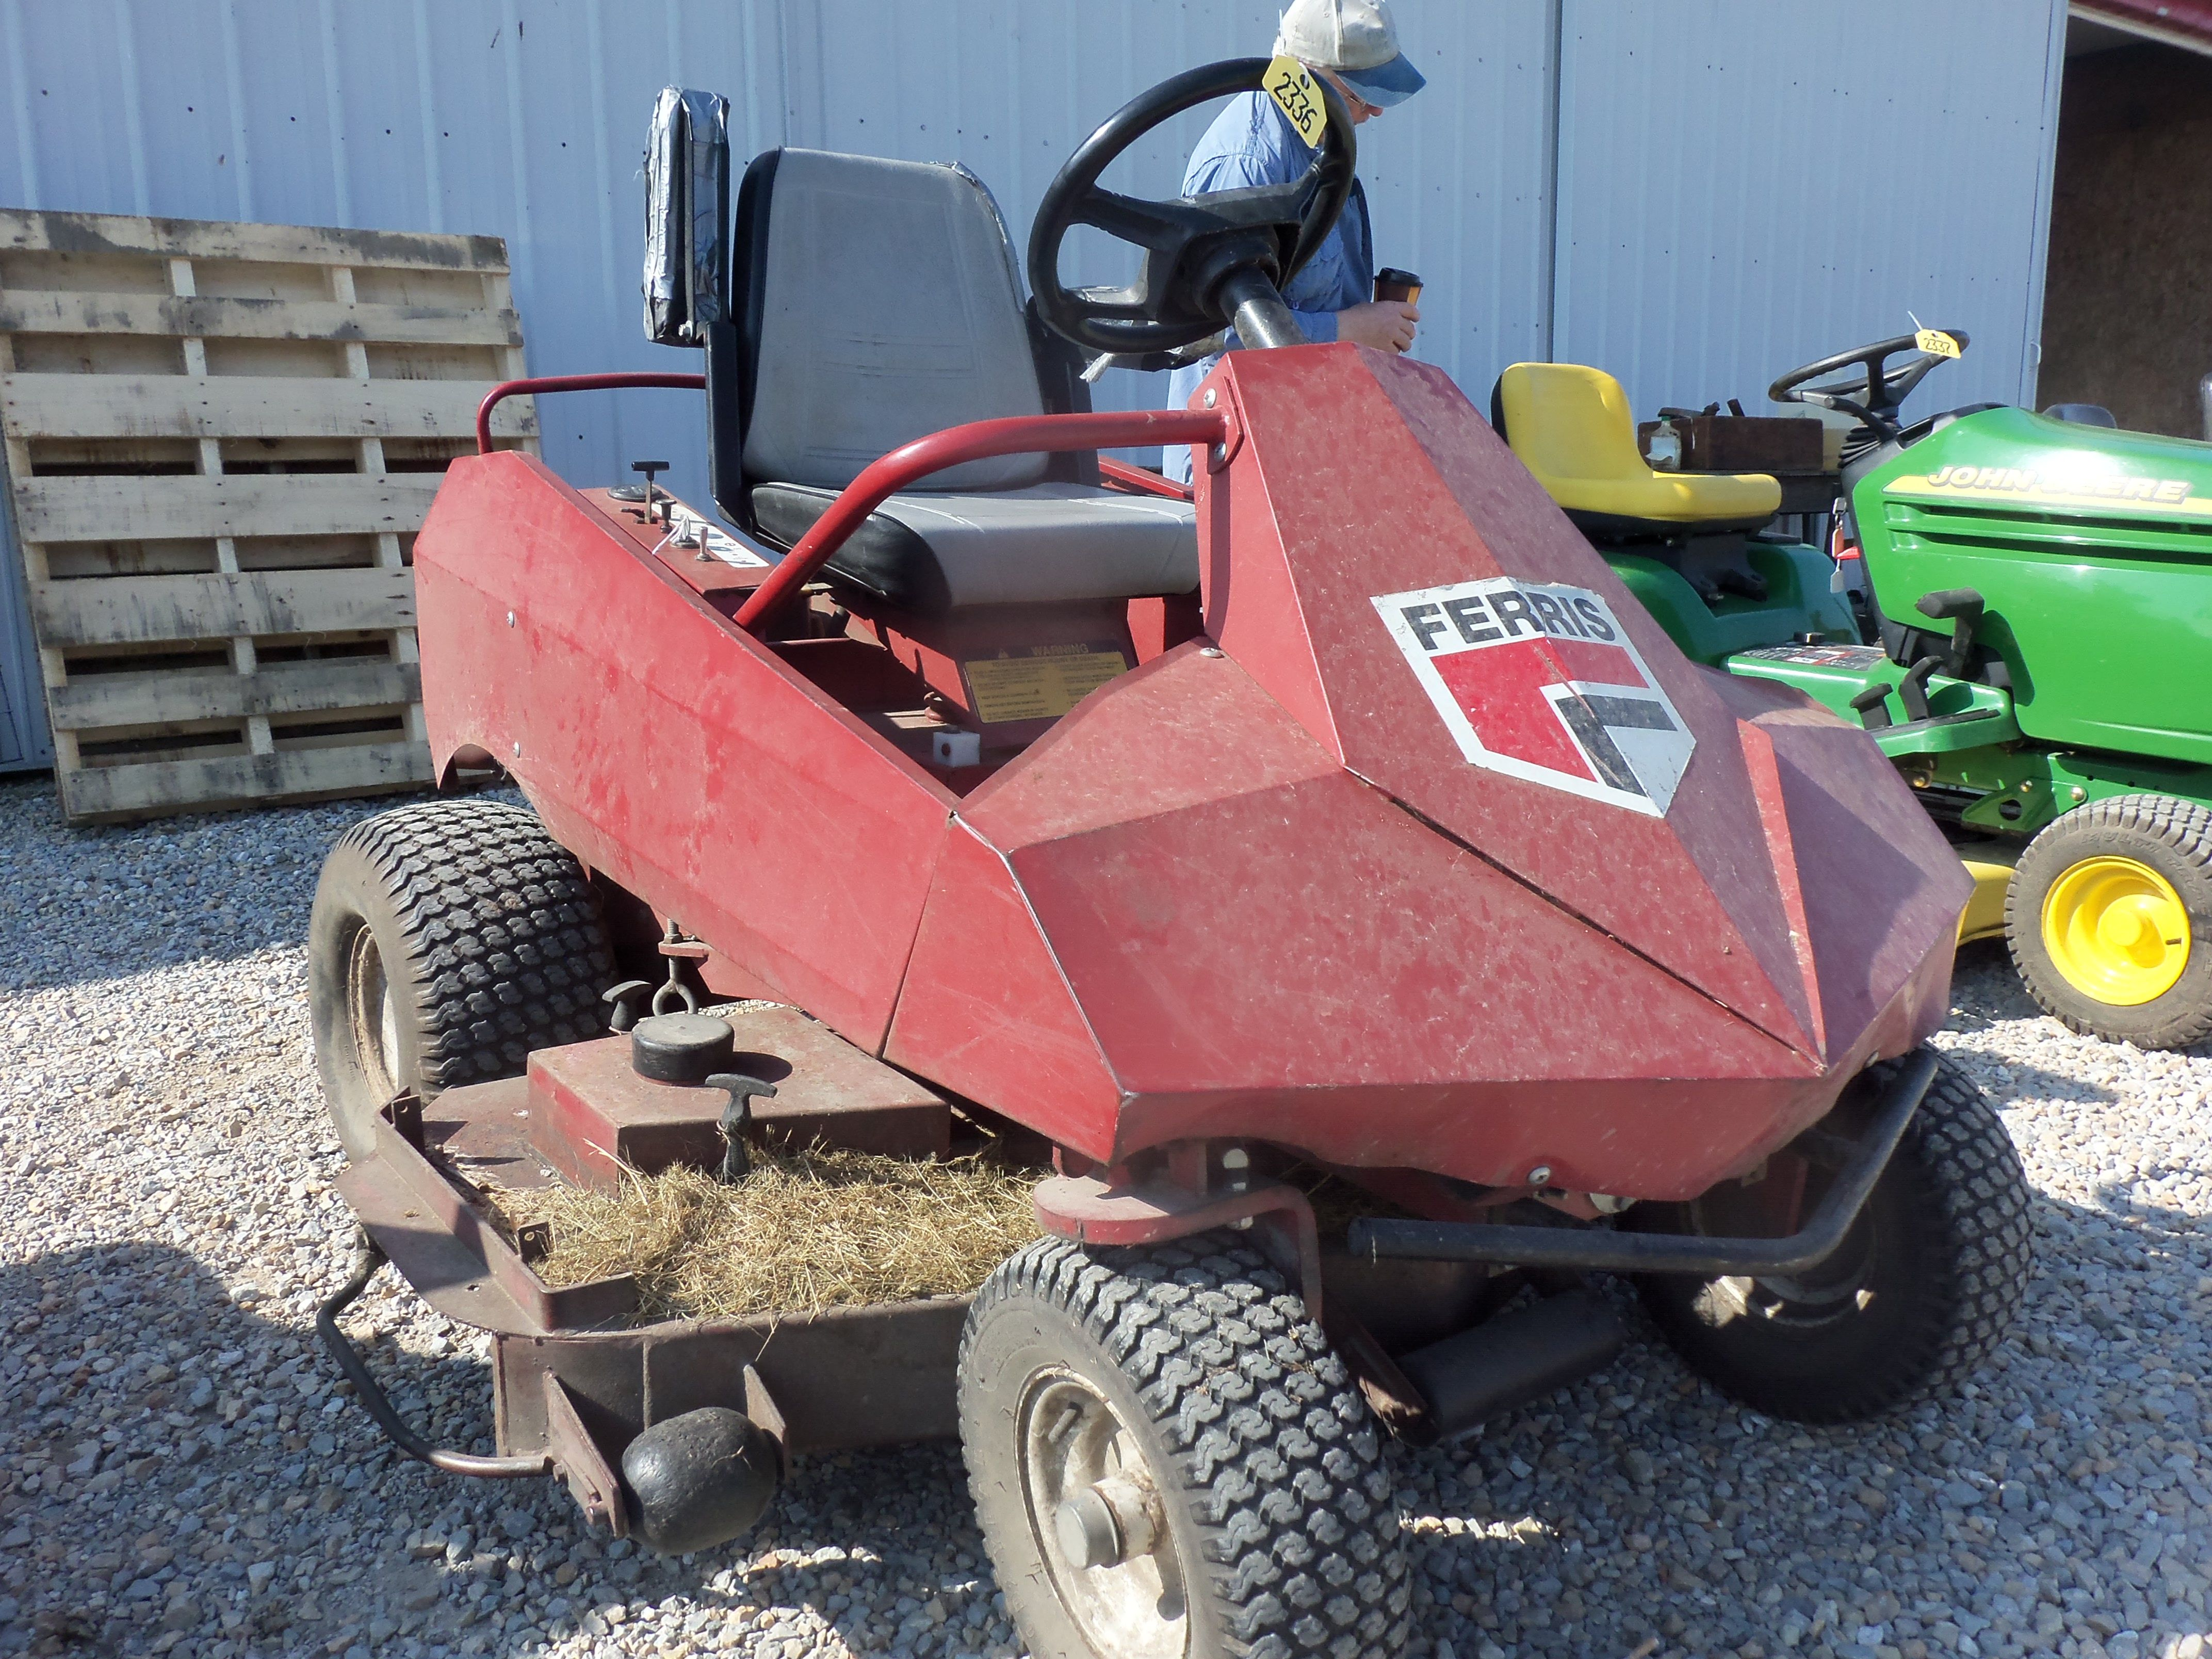 Red Ferris lawn mower | Tractors | Landscaping equipment, Lawn mower